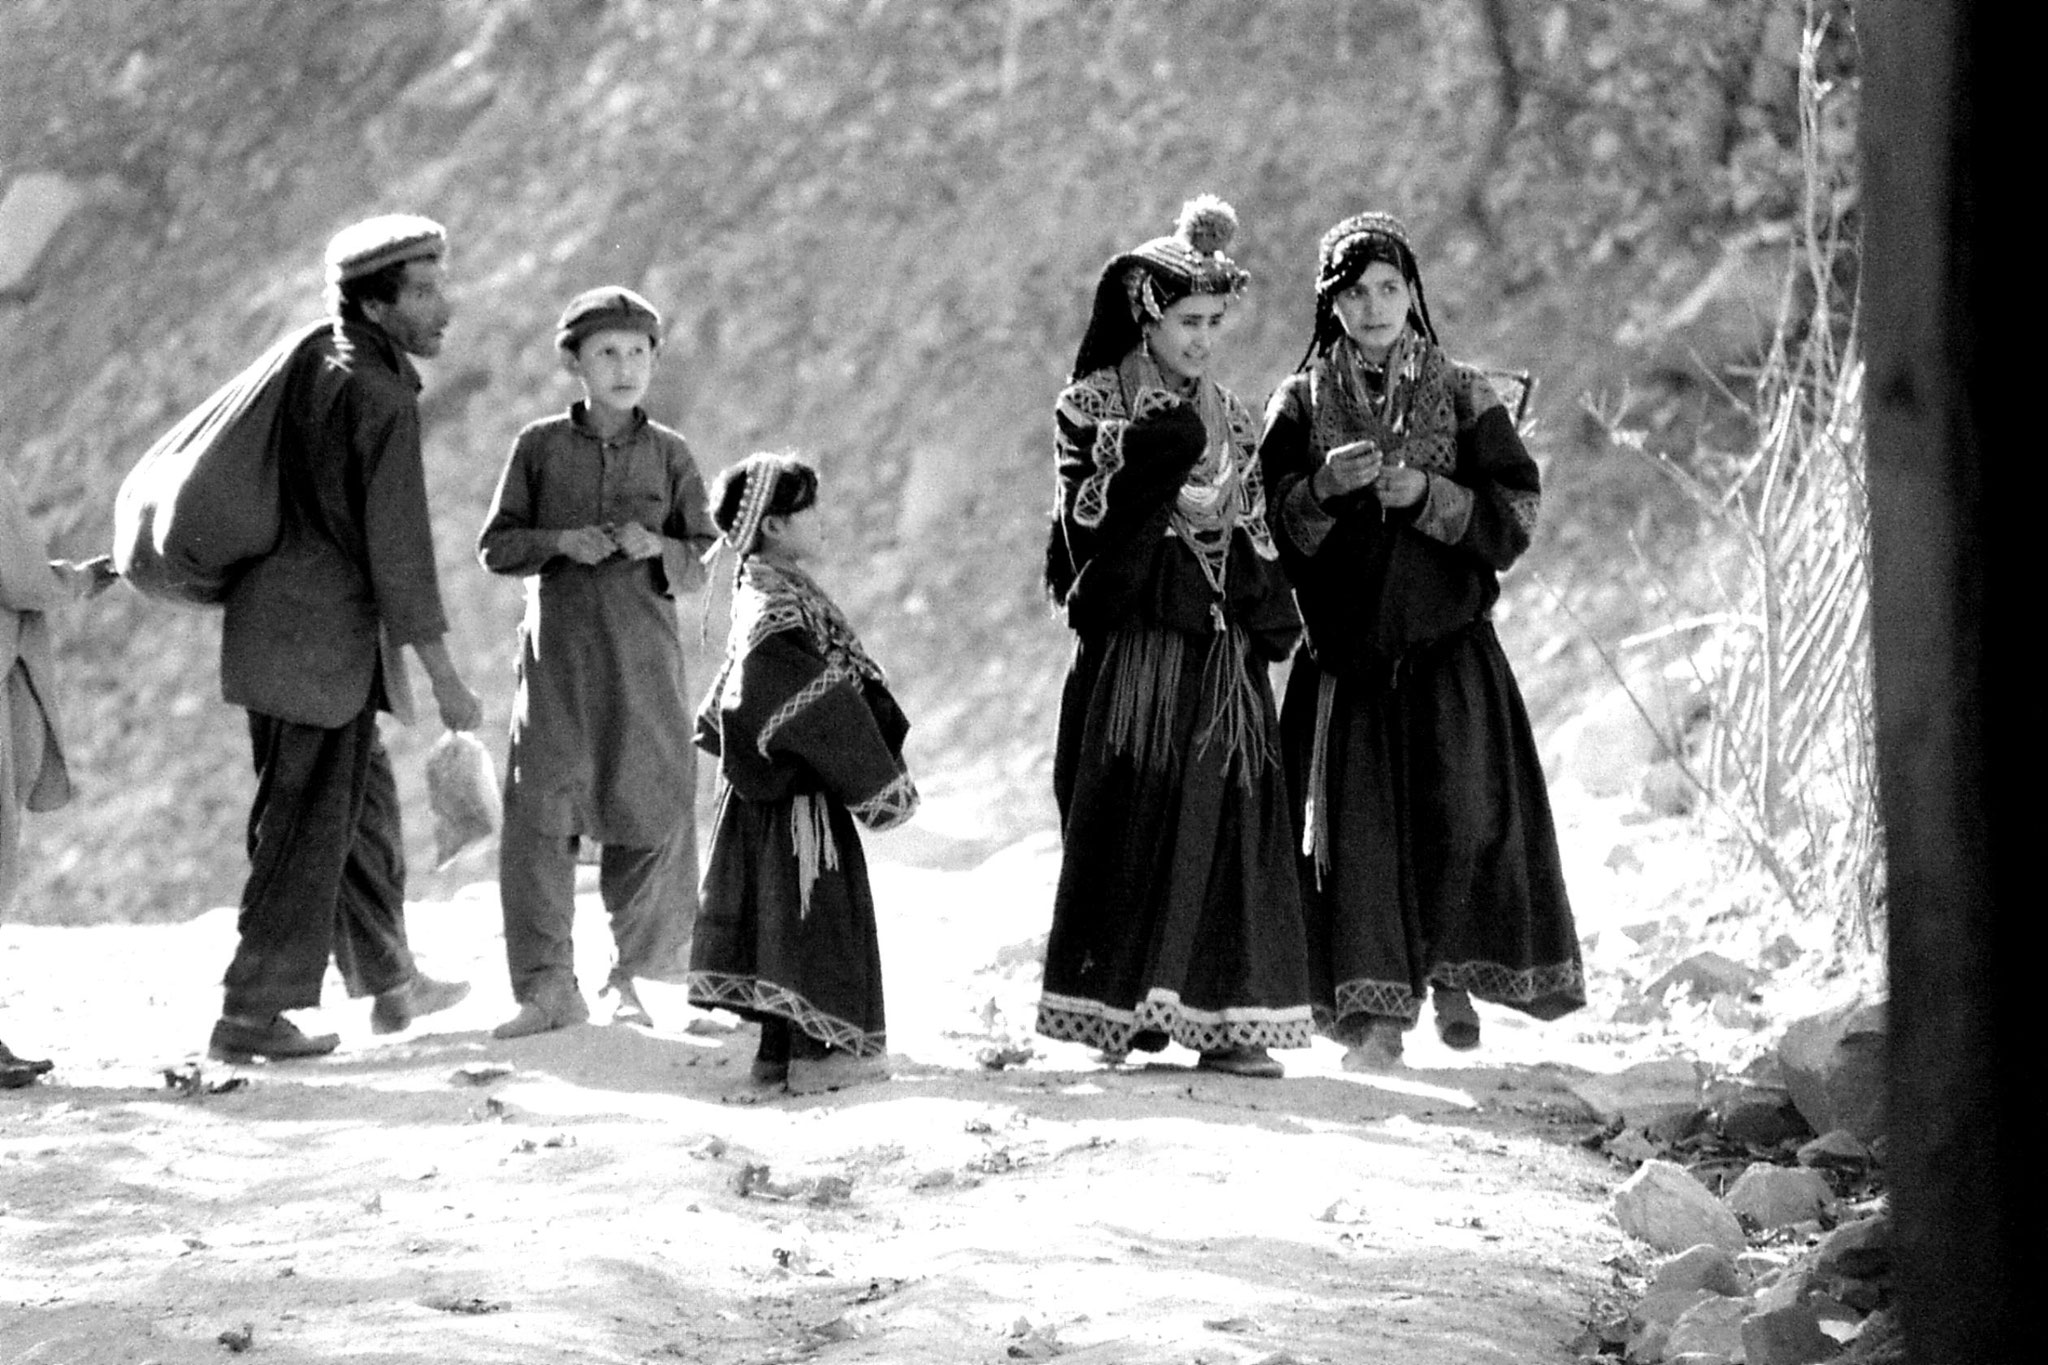 30/10/1989: 21: Bumburet, Kalash people